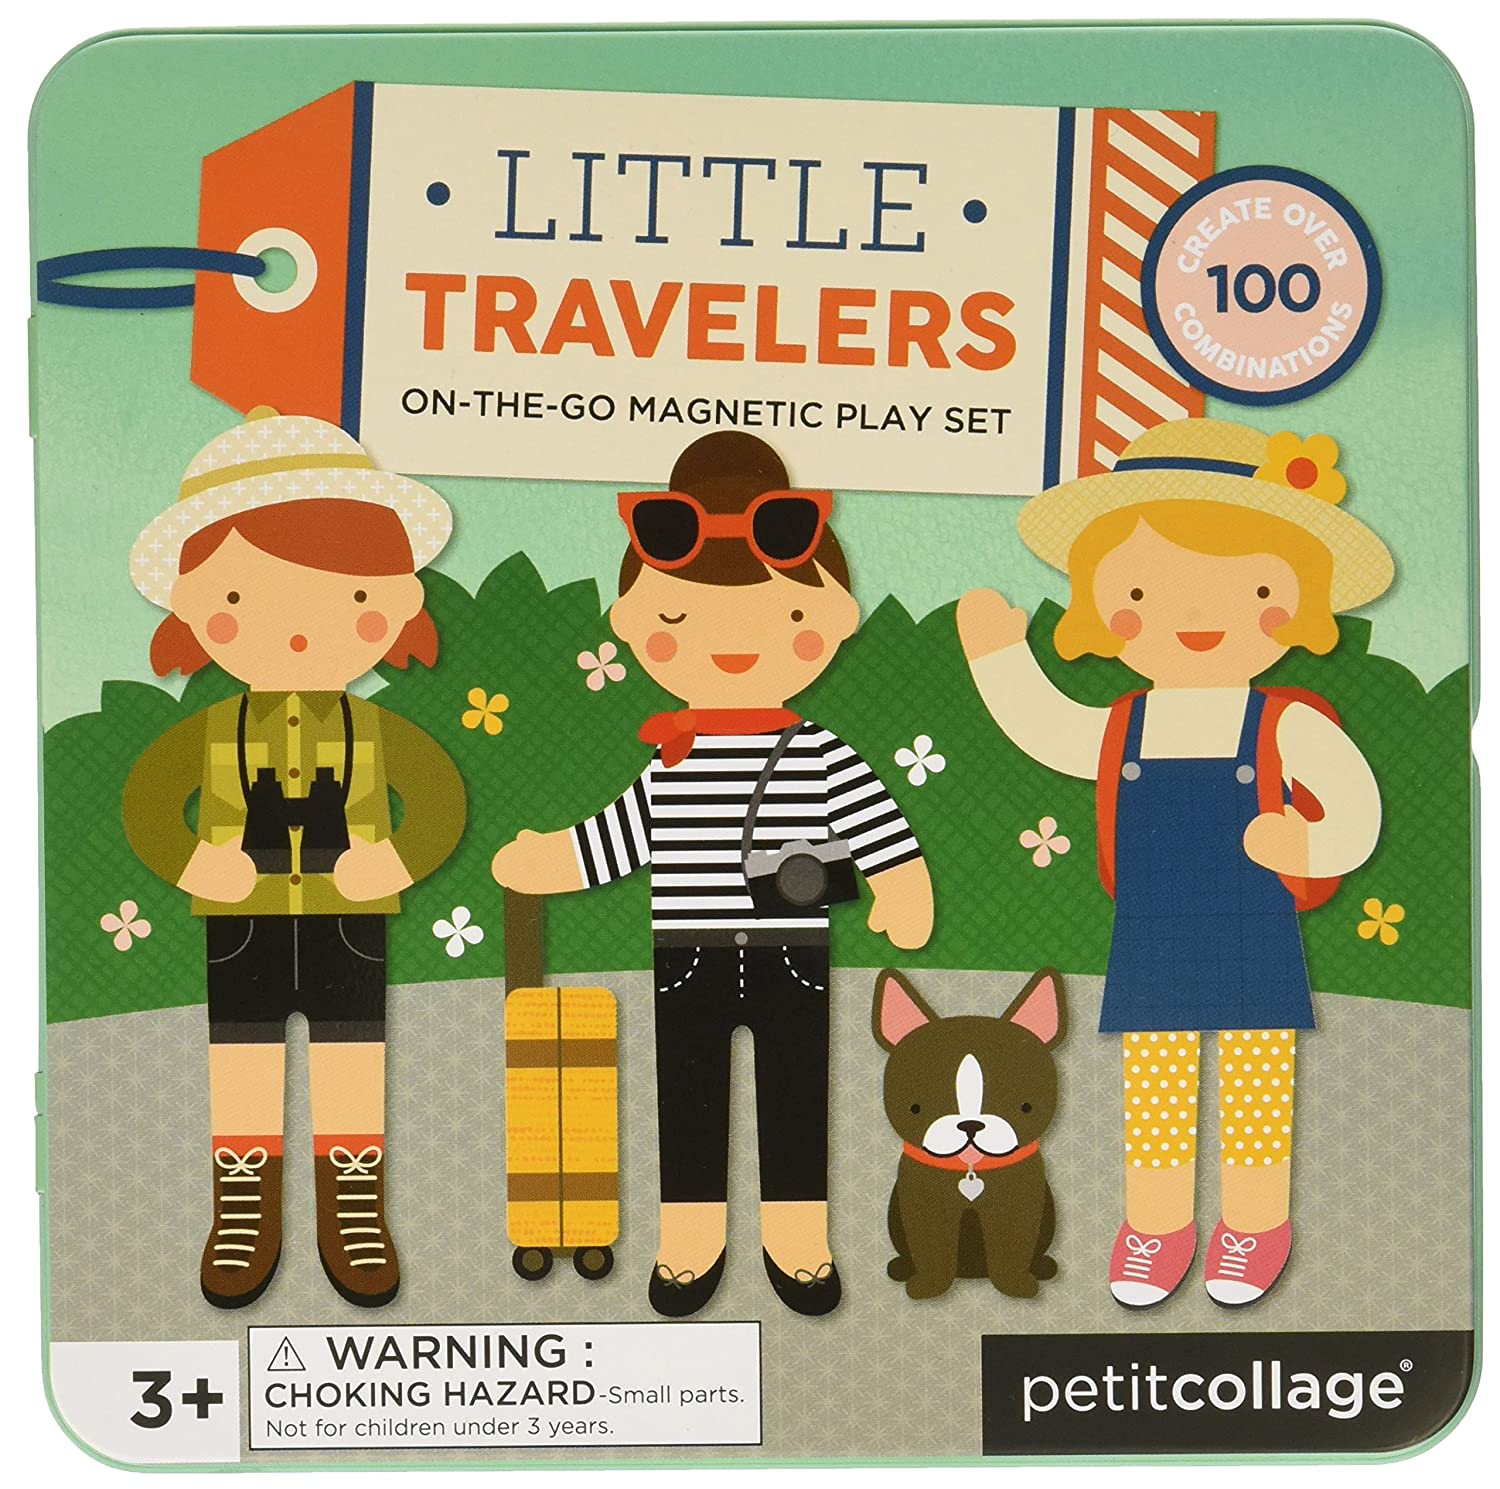 Petit Collage | Magnets | Game On The Go Girl Wild & Wolf Ltd. PTC226